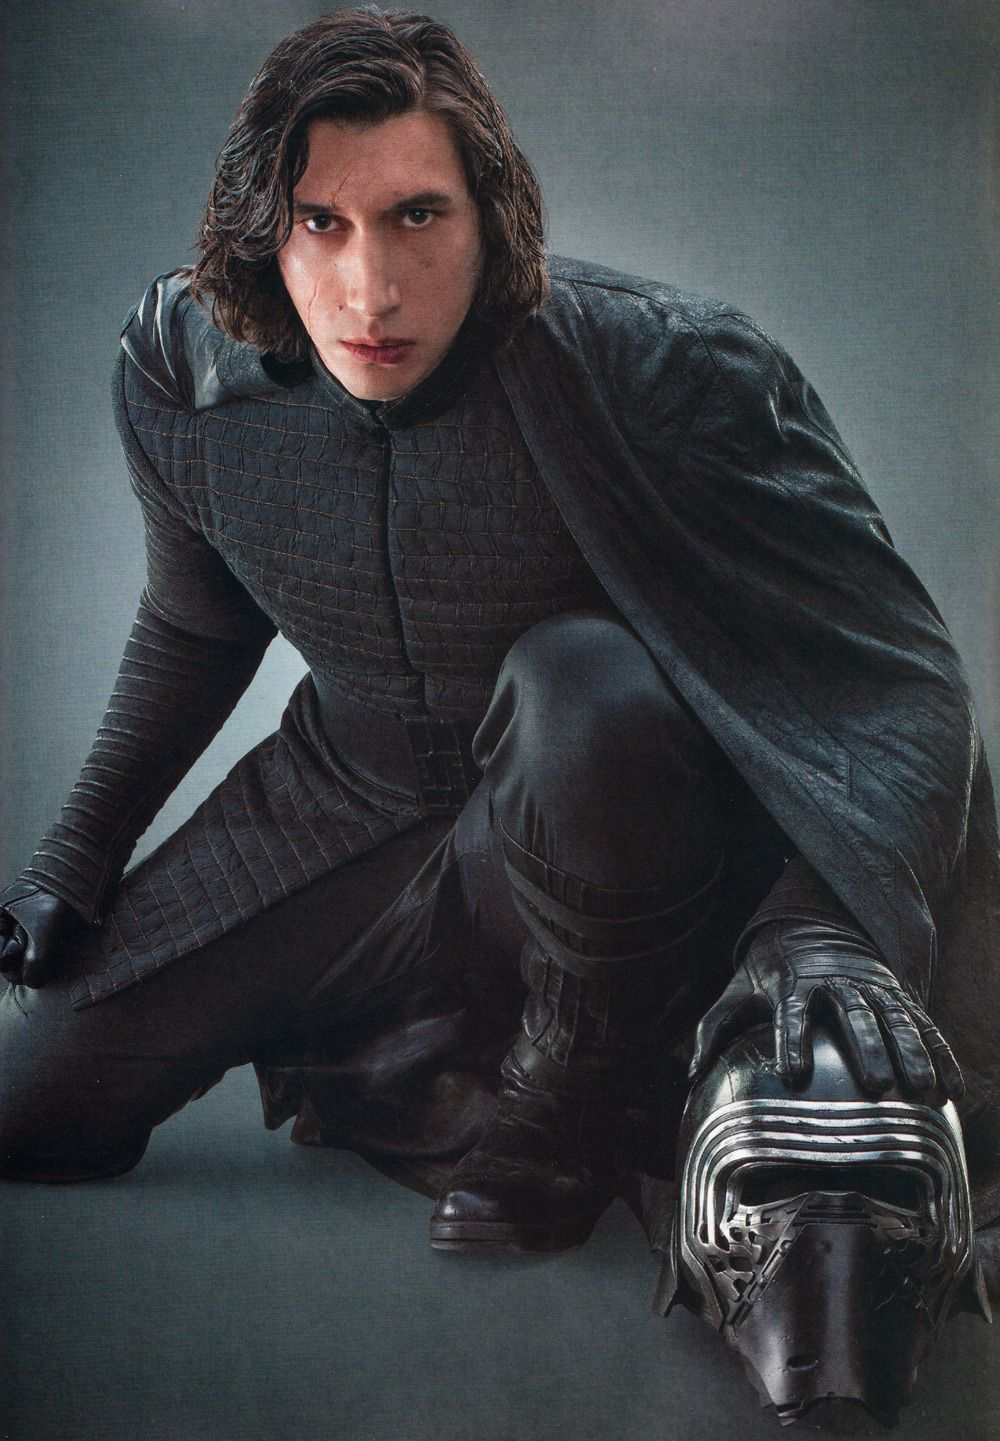 The Greatest Blessing The Last Jedi Star Wars Characters Ren Star Wars